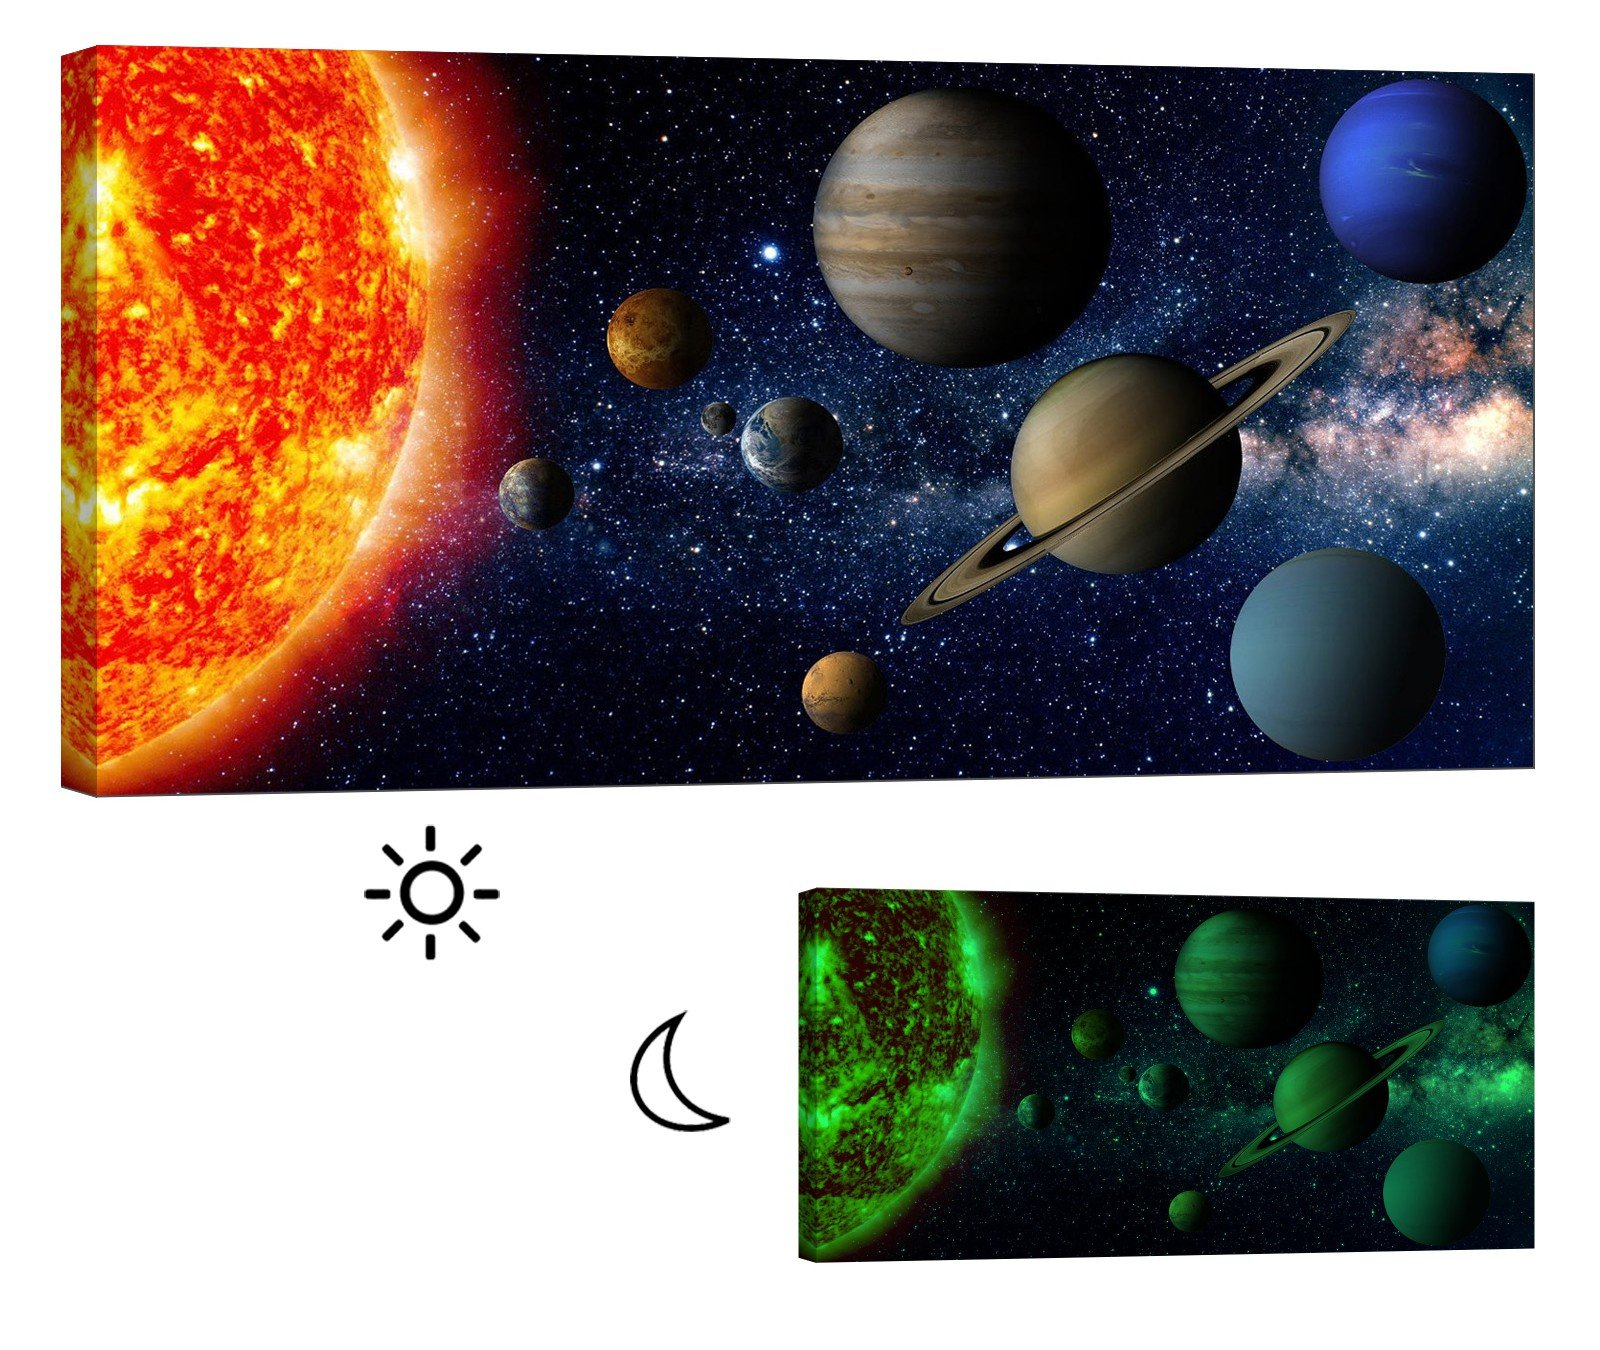 LightFairy Glow in the Dark Canvas Painting - Stretched and Framed Giclee Wall Art Print - Space Outerspace Solar System - Master Bedroom Living Room Decor - 6 Hours Glow - 46 x 24 Inch